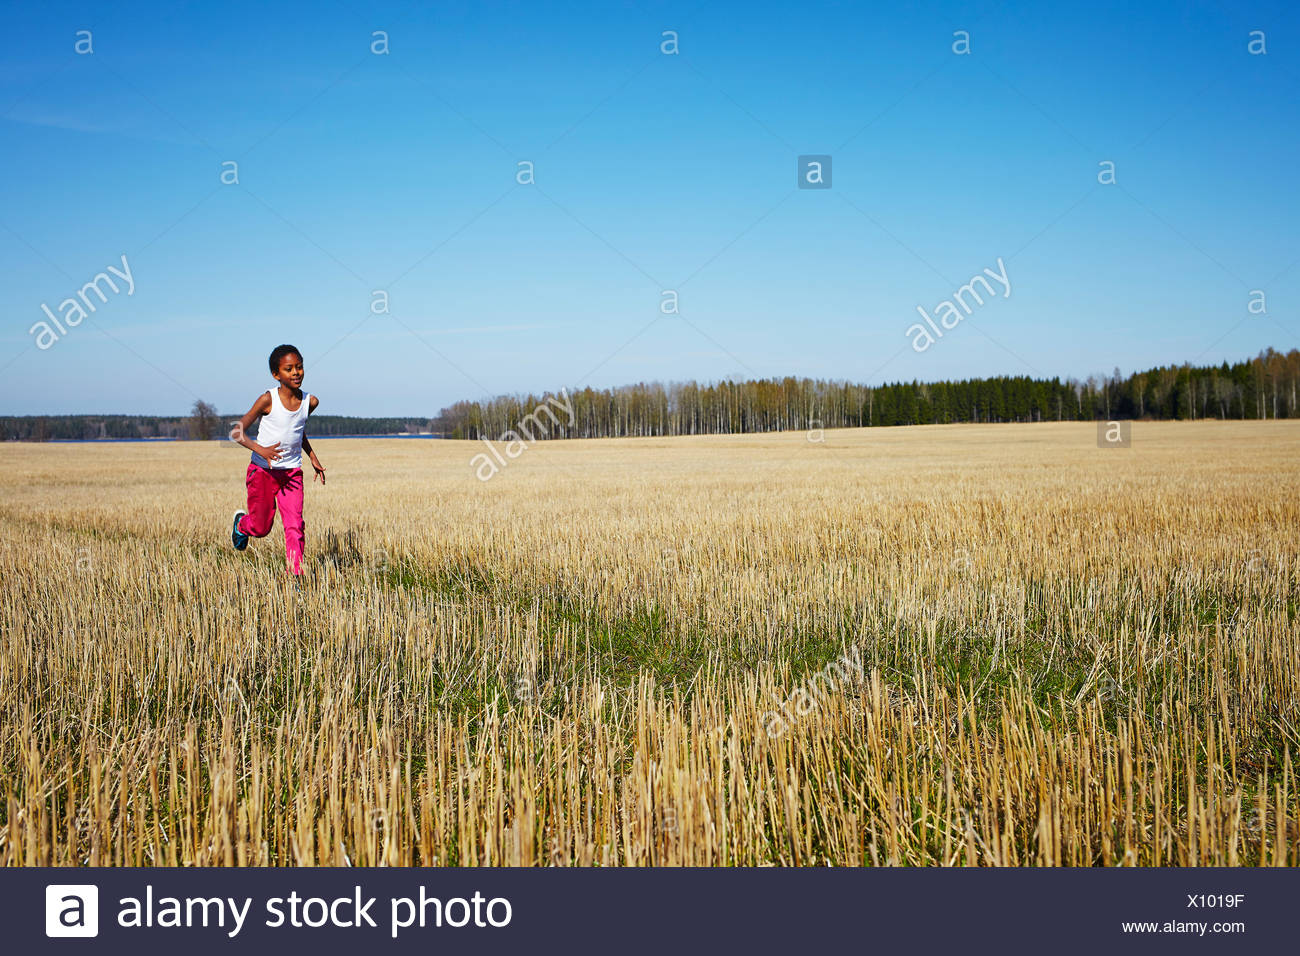 Sweden, Vastra Gotaland, Gullspang, Runnas, Boy (8-9) running in field - Stock Image